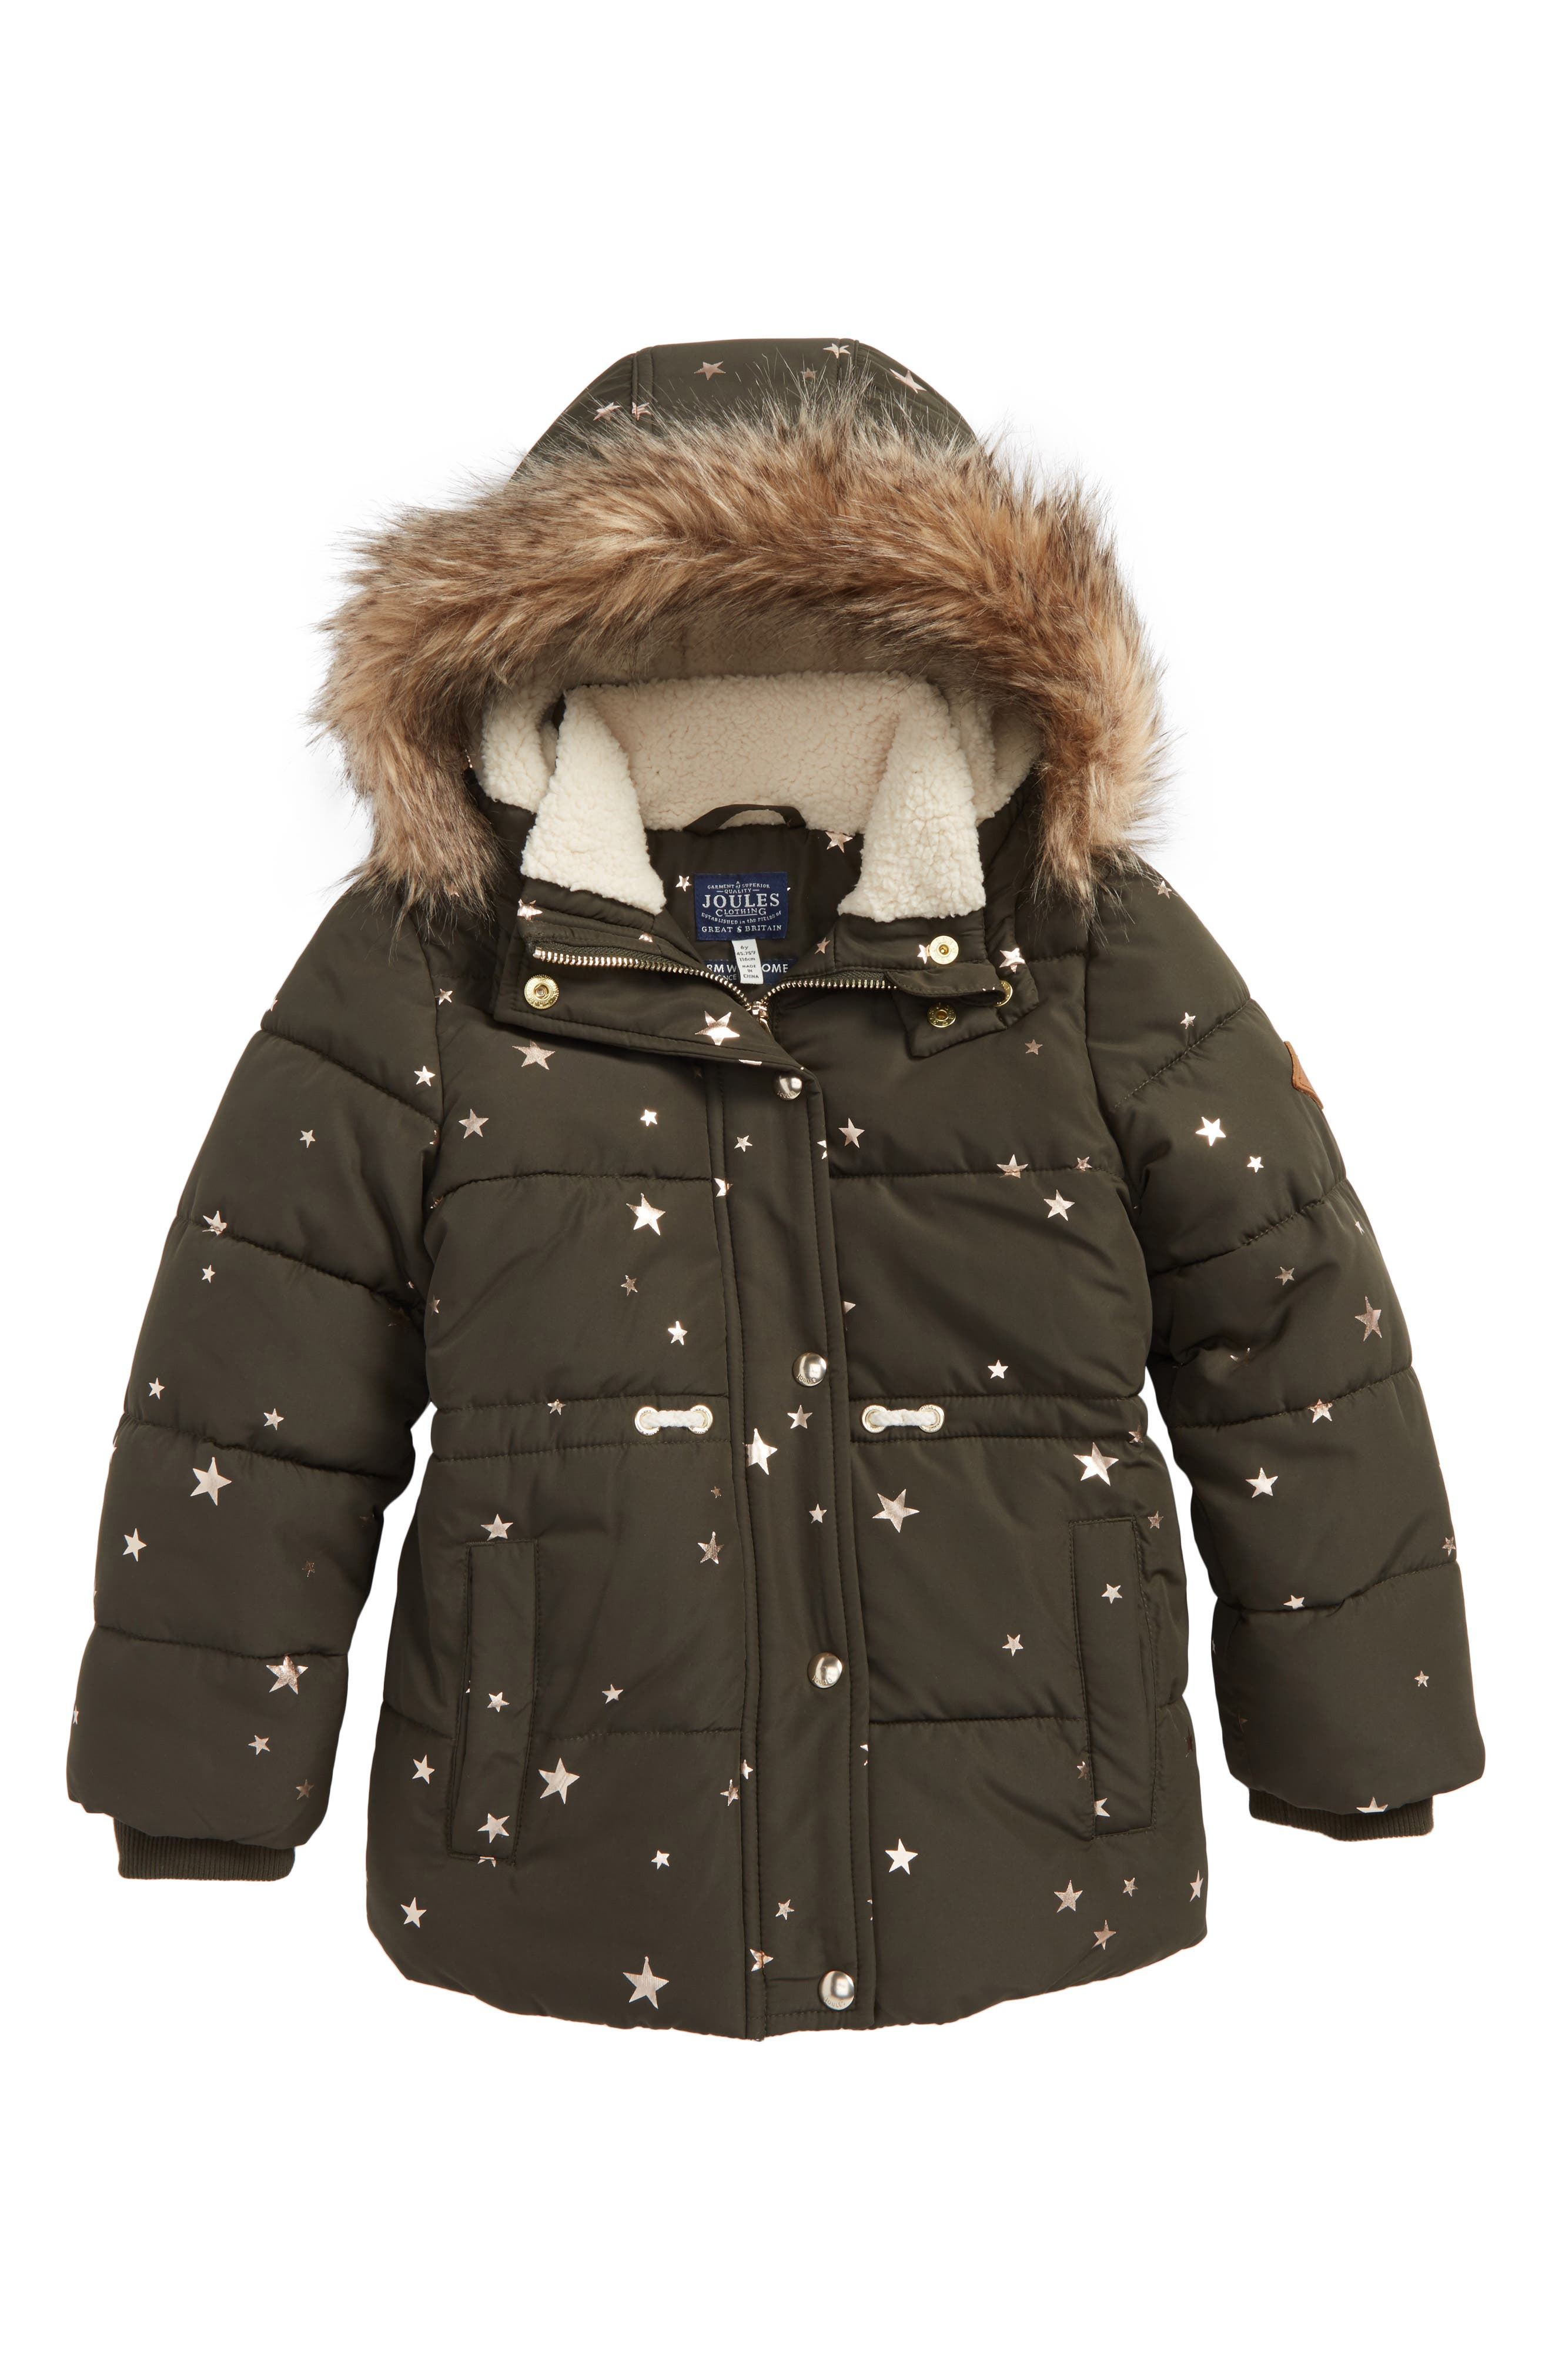 Alternate Image 1 Selected - Joules Stella Hooded Puffer Jacket (Toddler Girls, Little Girls & Big Girls)